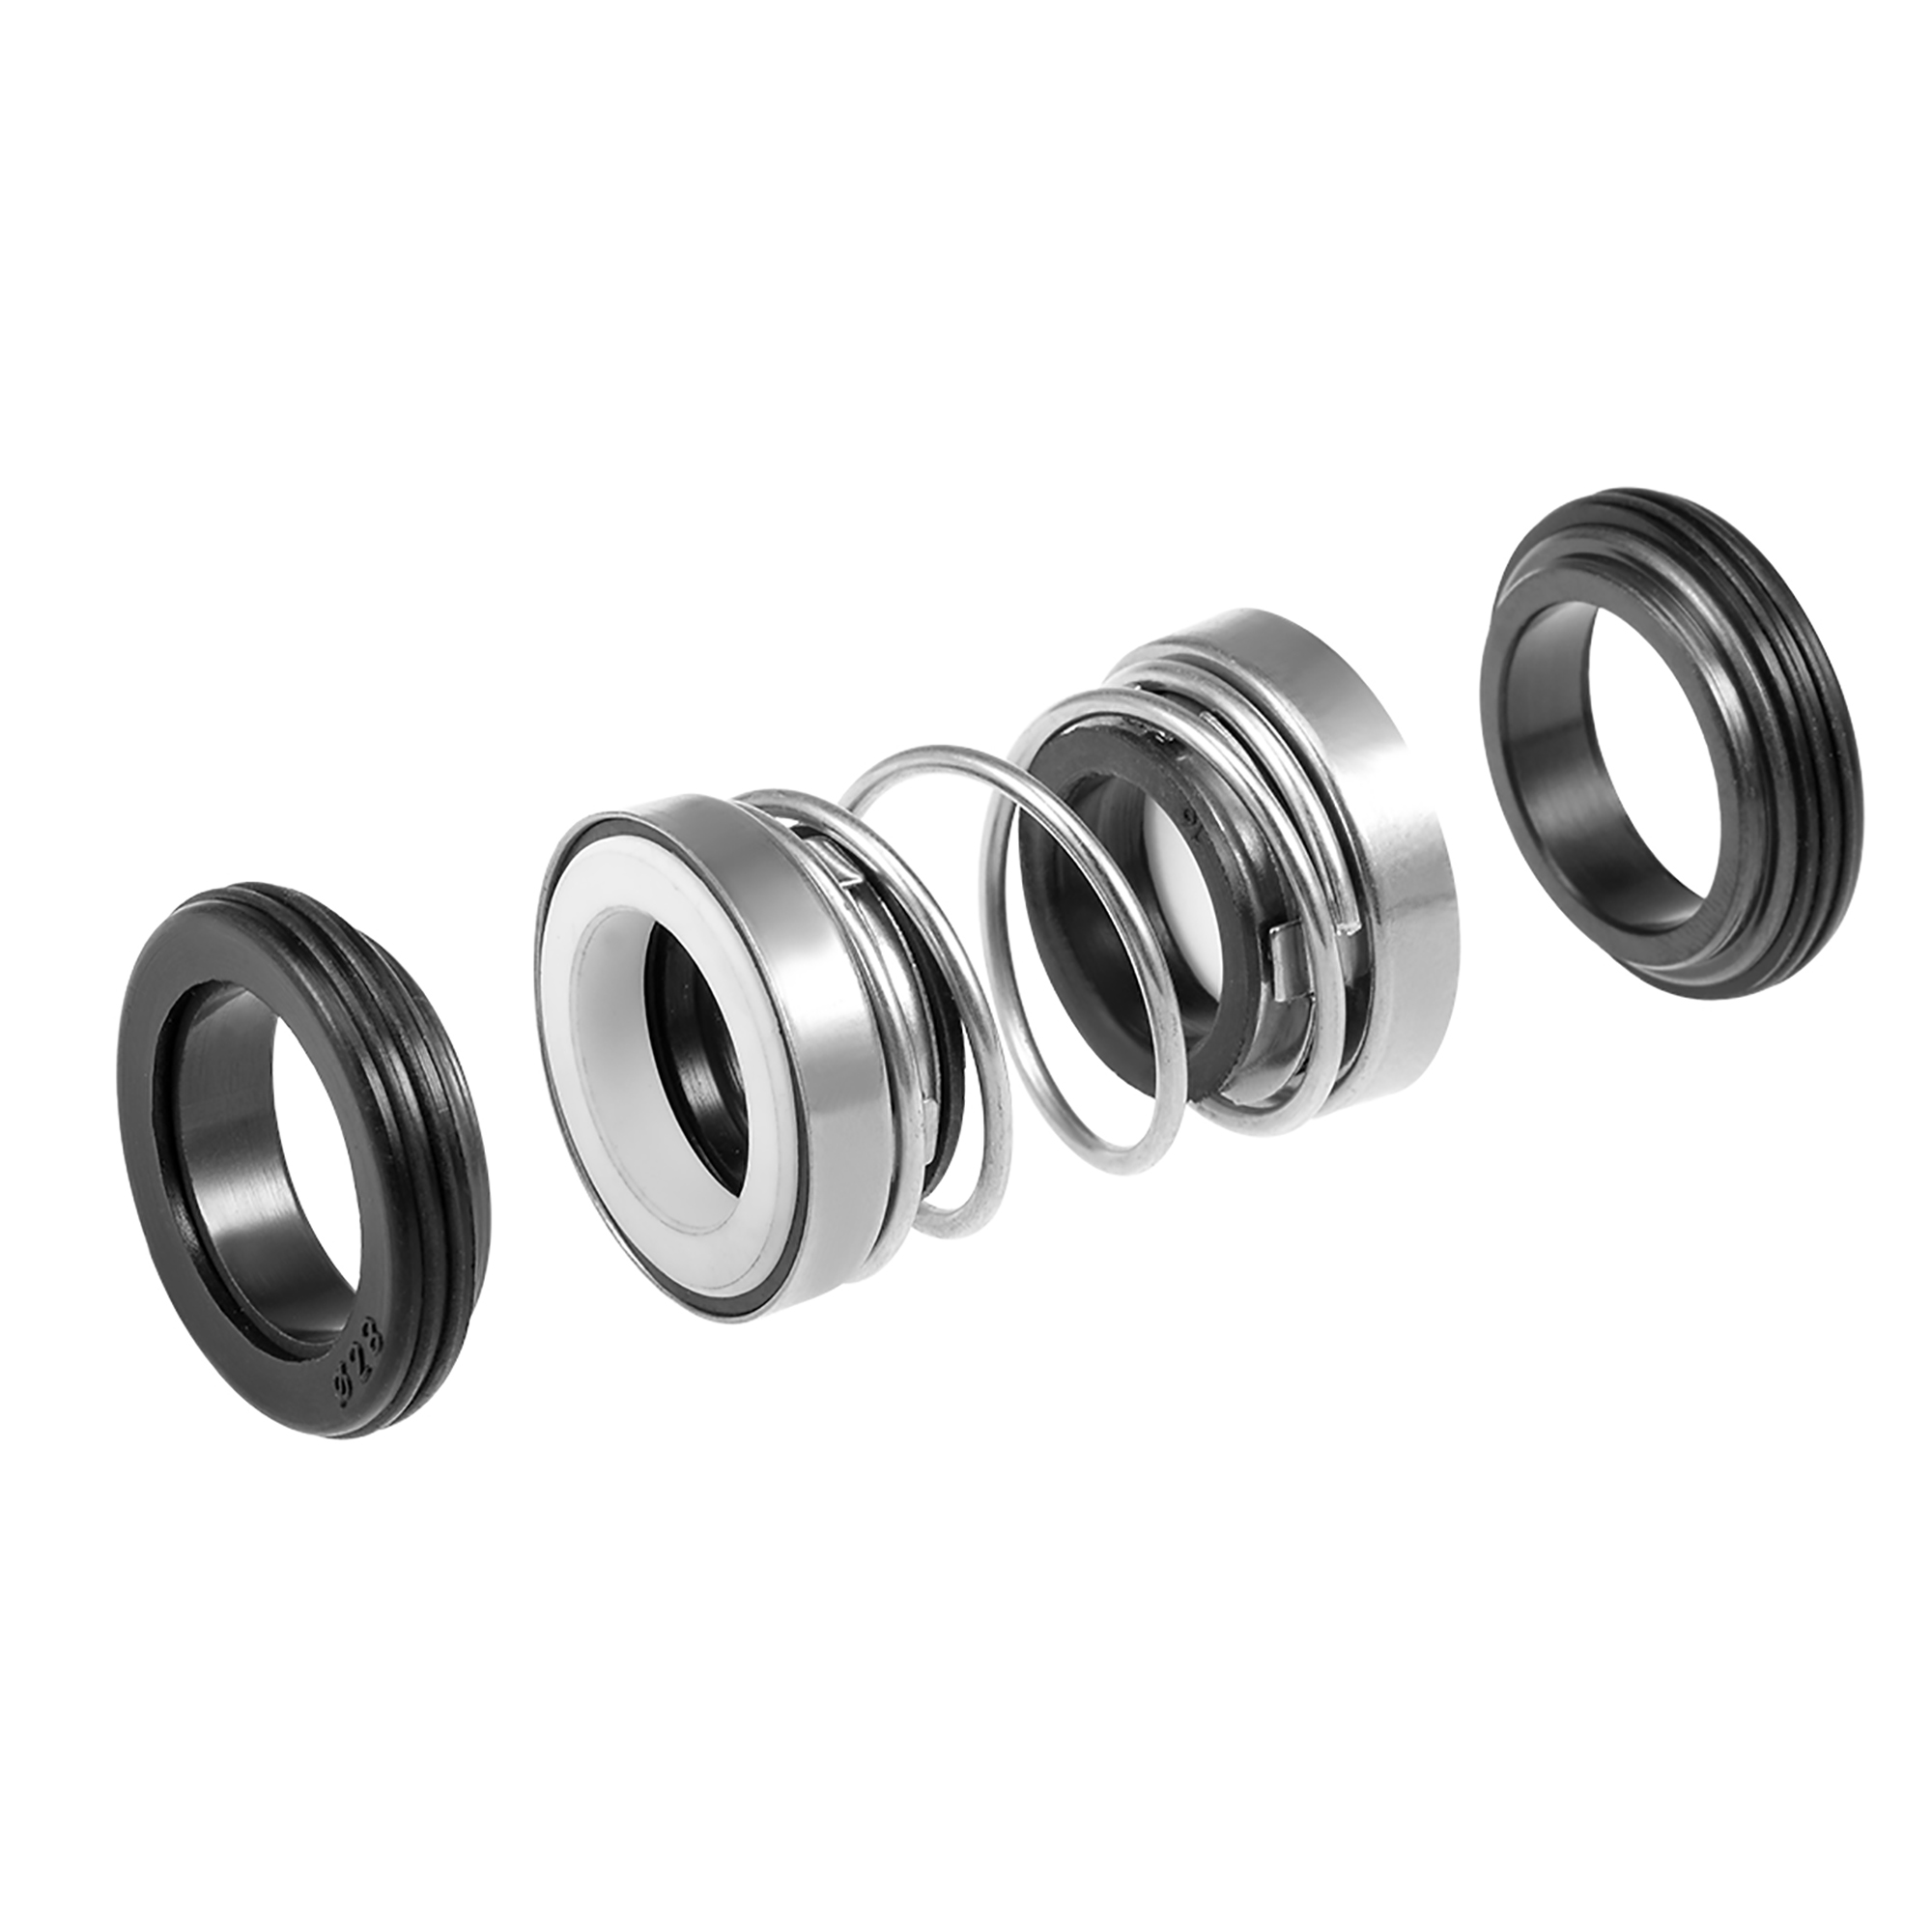 Mechanical Shaft Seal Replacement for Pool Spa Pump 3pcs 202-16 - image 2 of 3